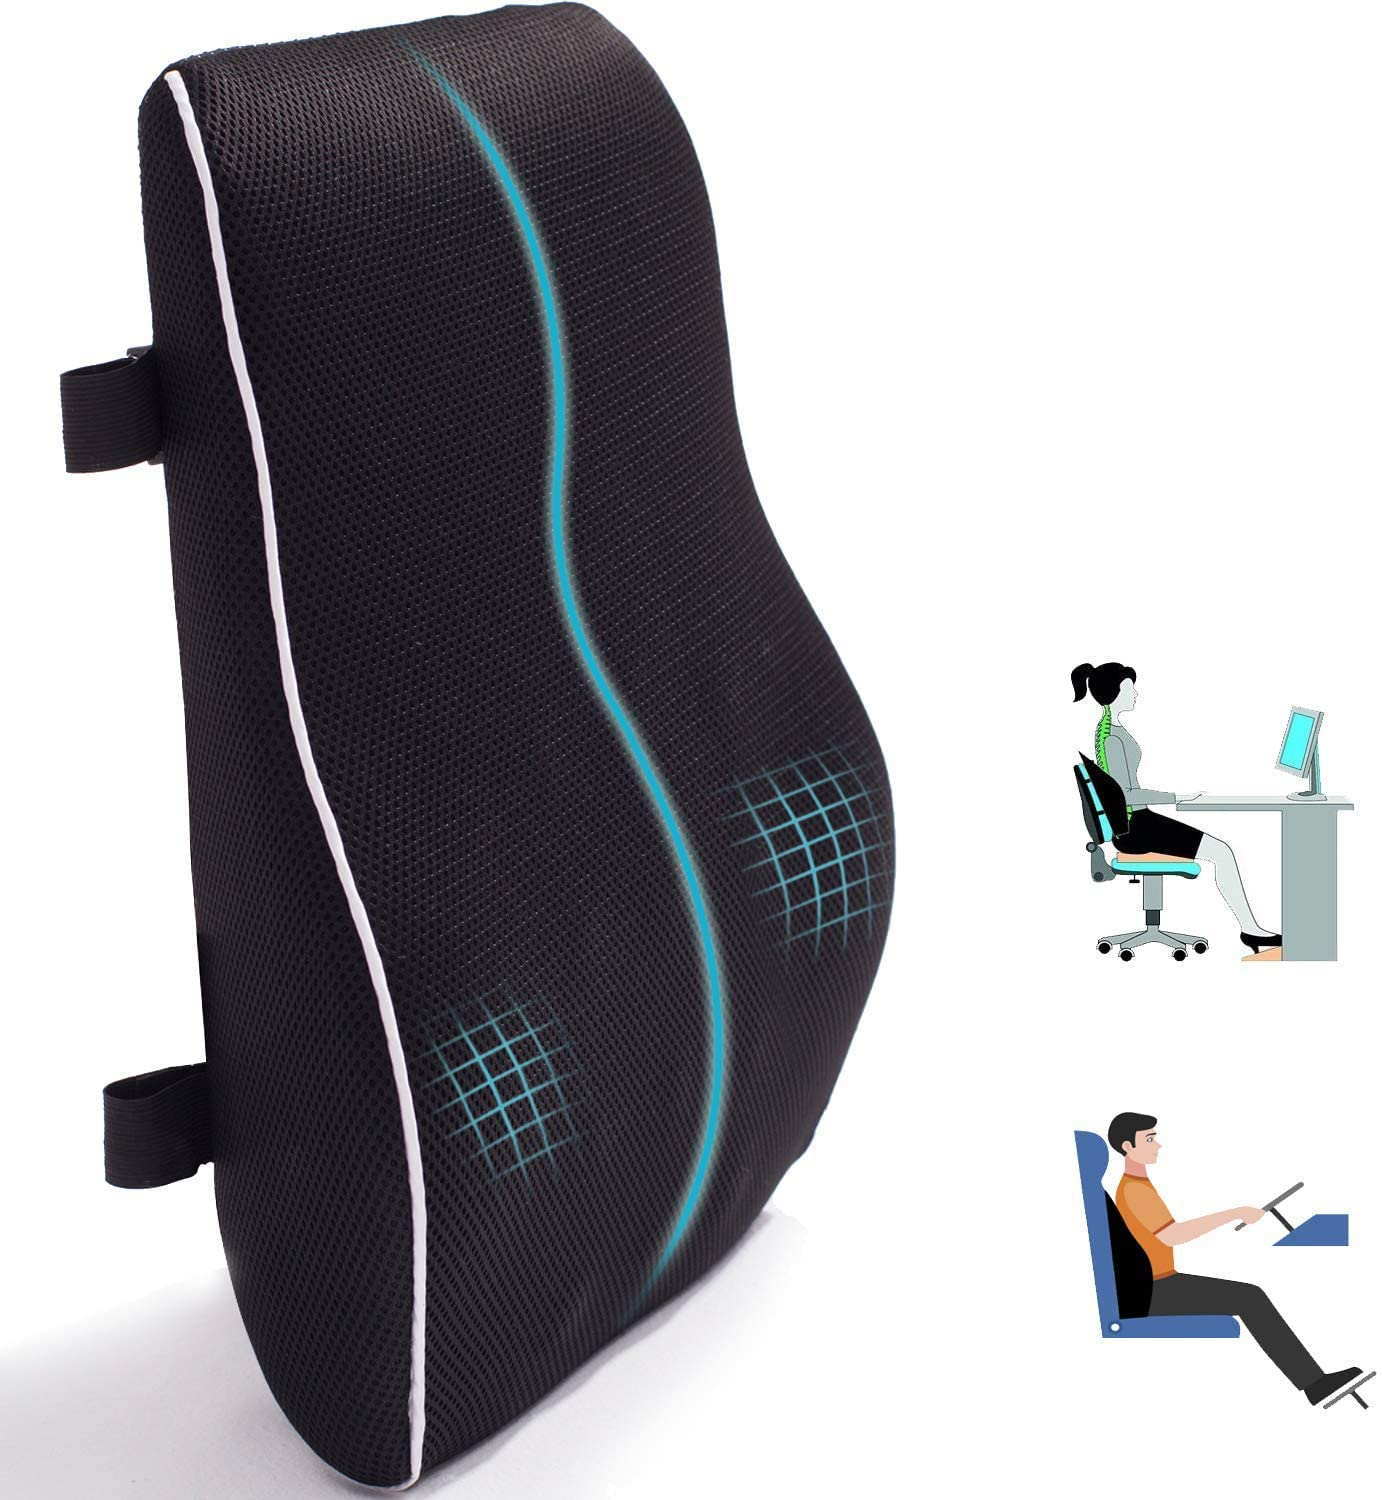 Amazon Com Lumbar Support Pillow For Office Chair Car Memory Foam Back Cushion For Back Pain Relief Improve Posture Large Back Pillow For Computer Gaming Chair Recliner With Mesh Cover Double Adjustable Straps